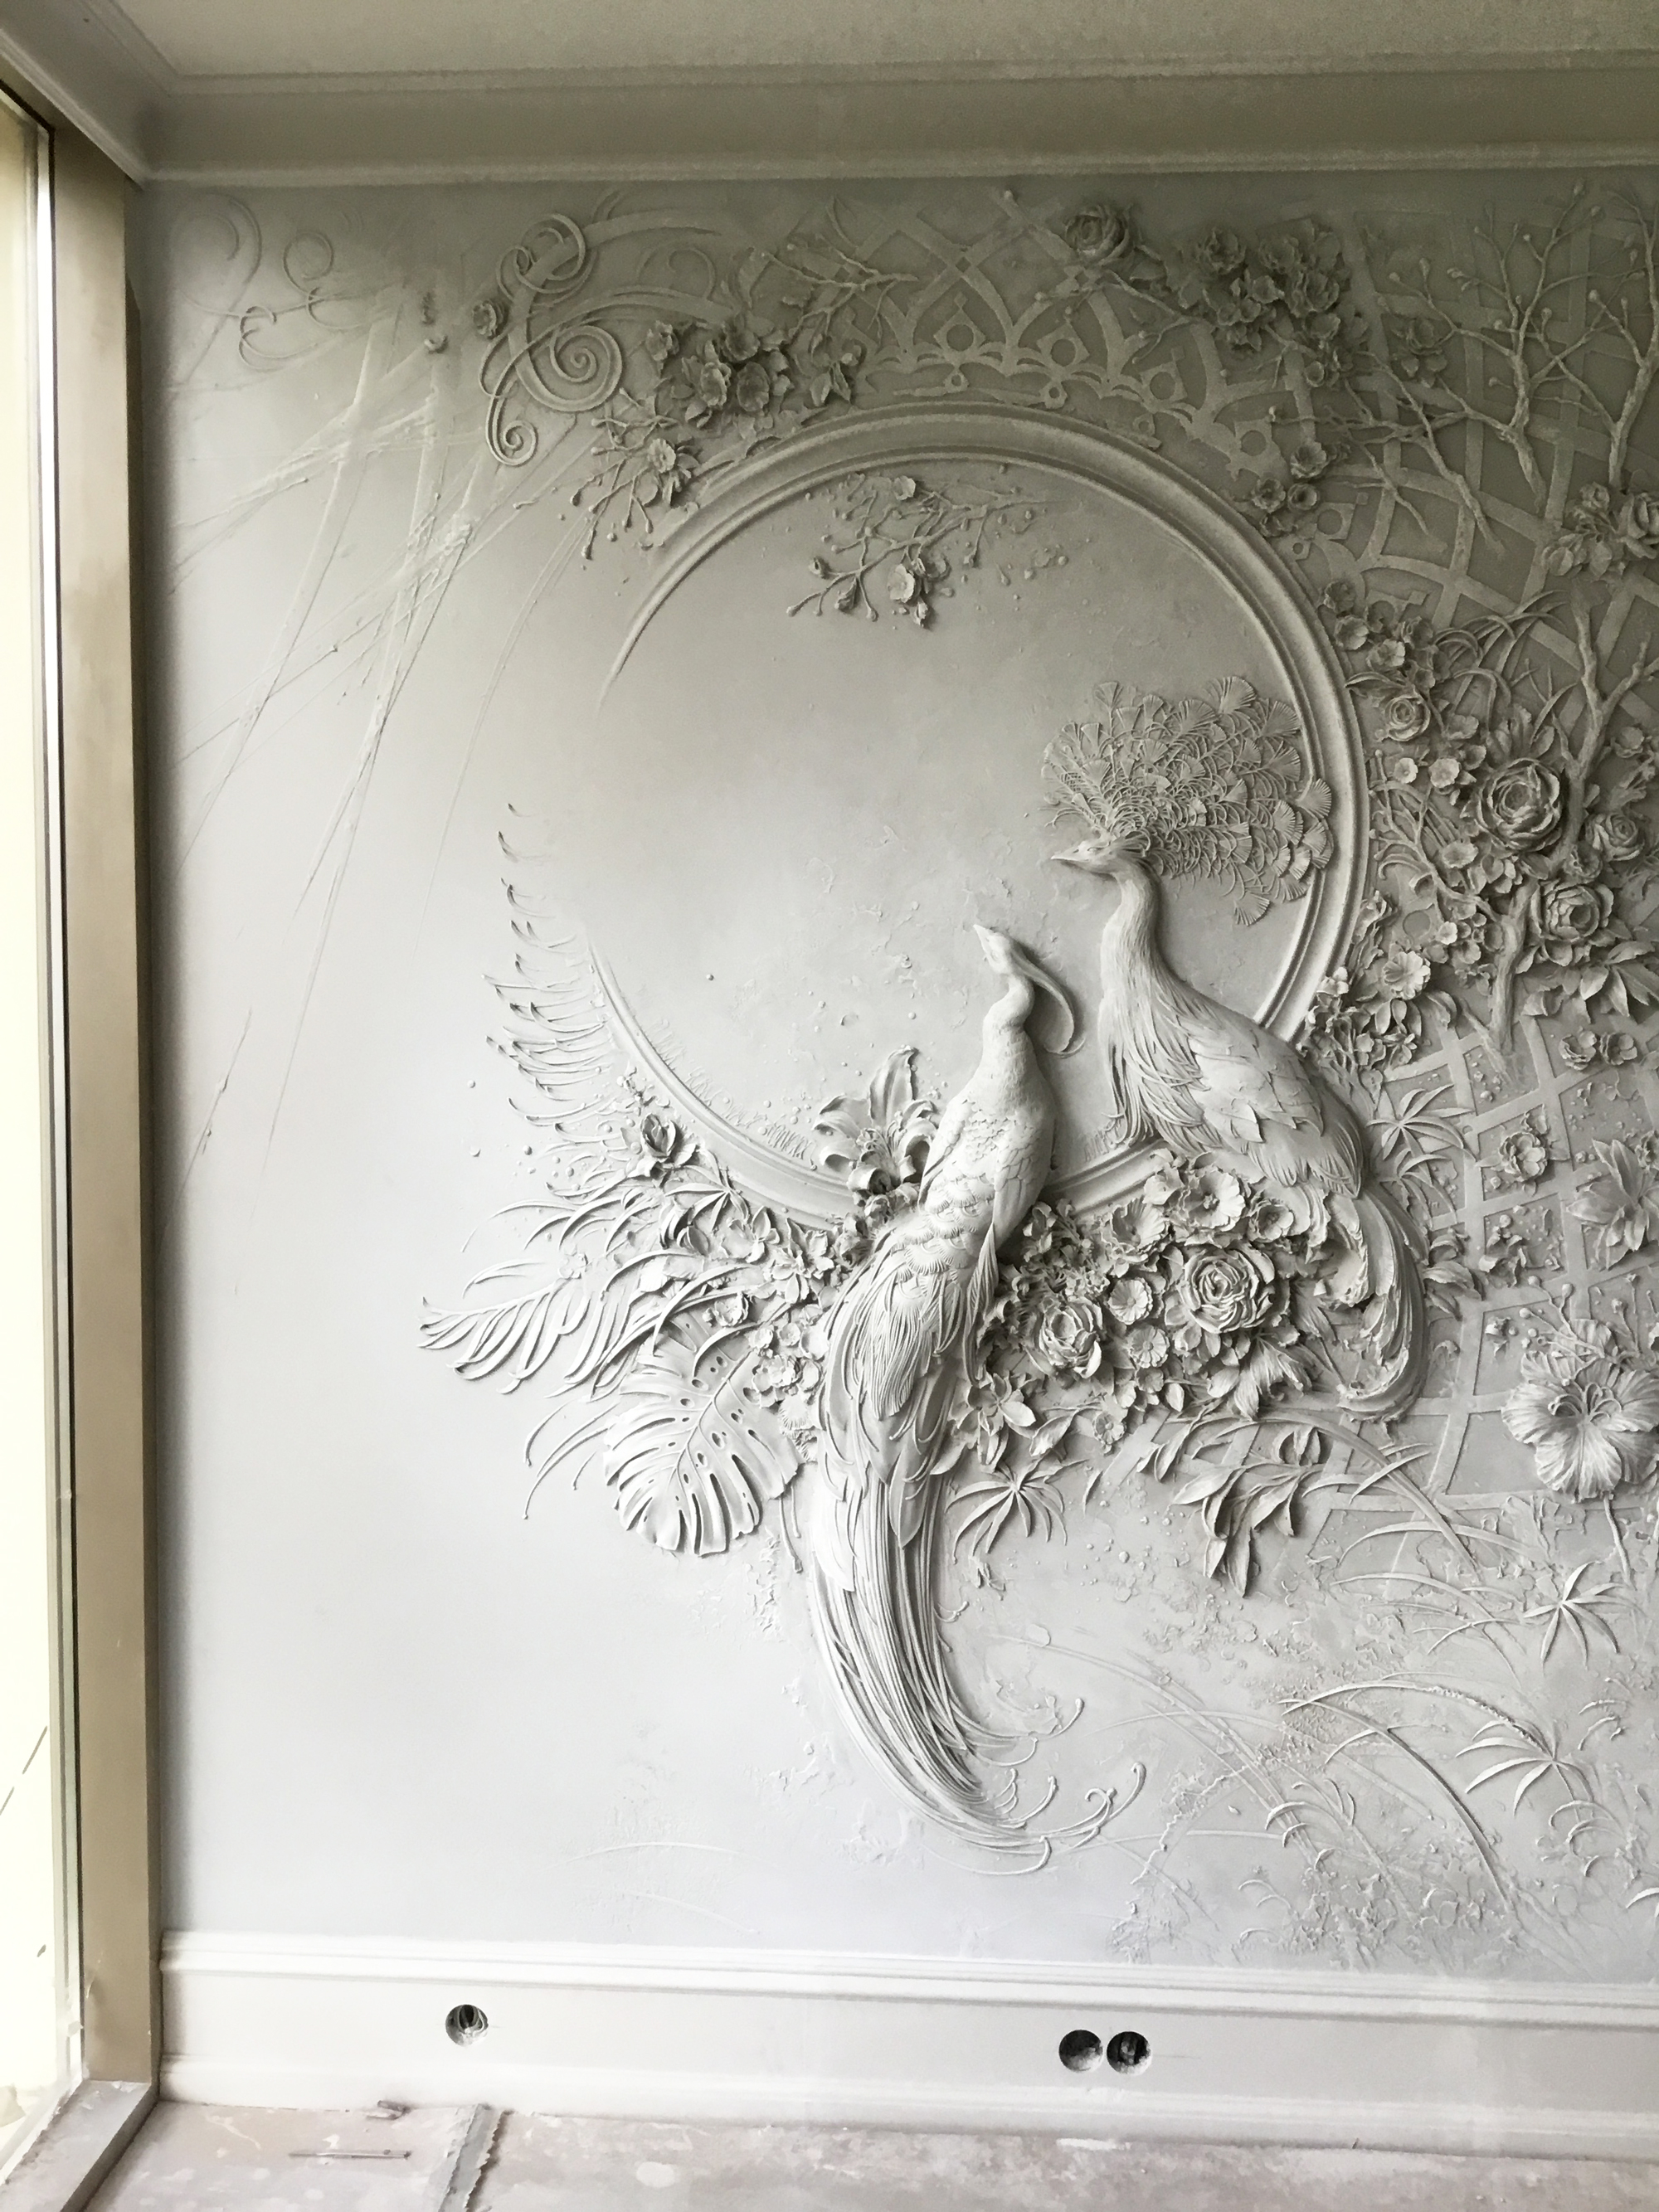 Interior BasRelief Sculptures of Peacocks and Lush